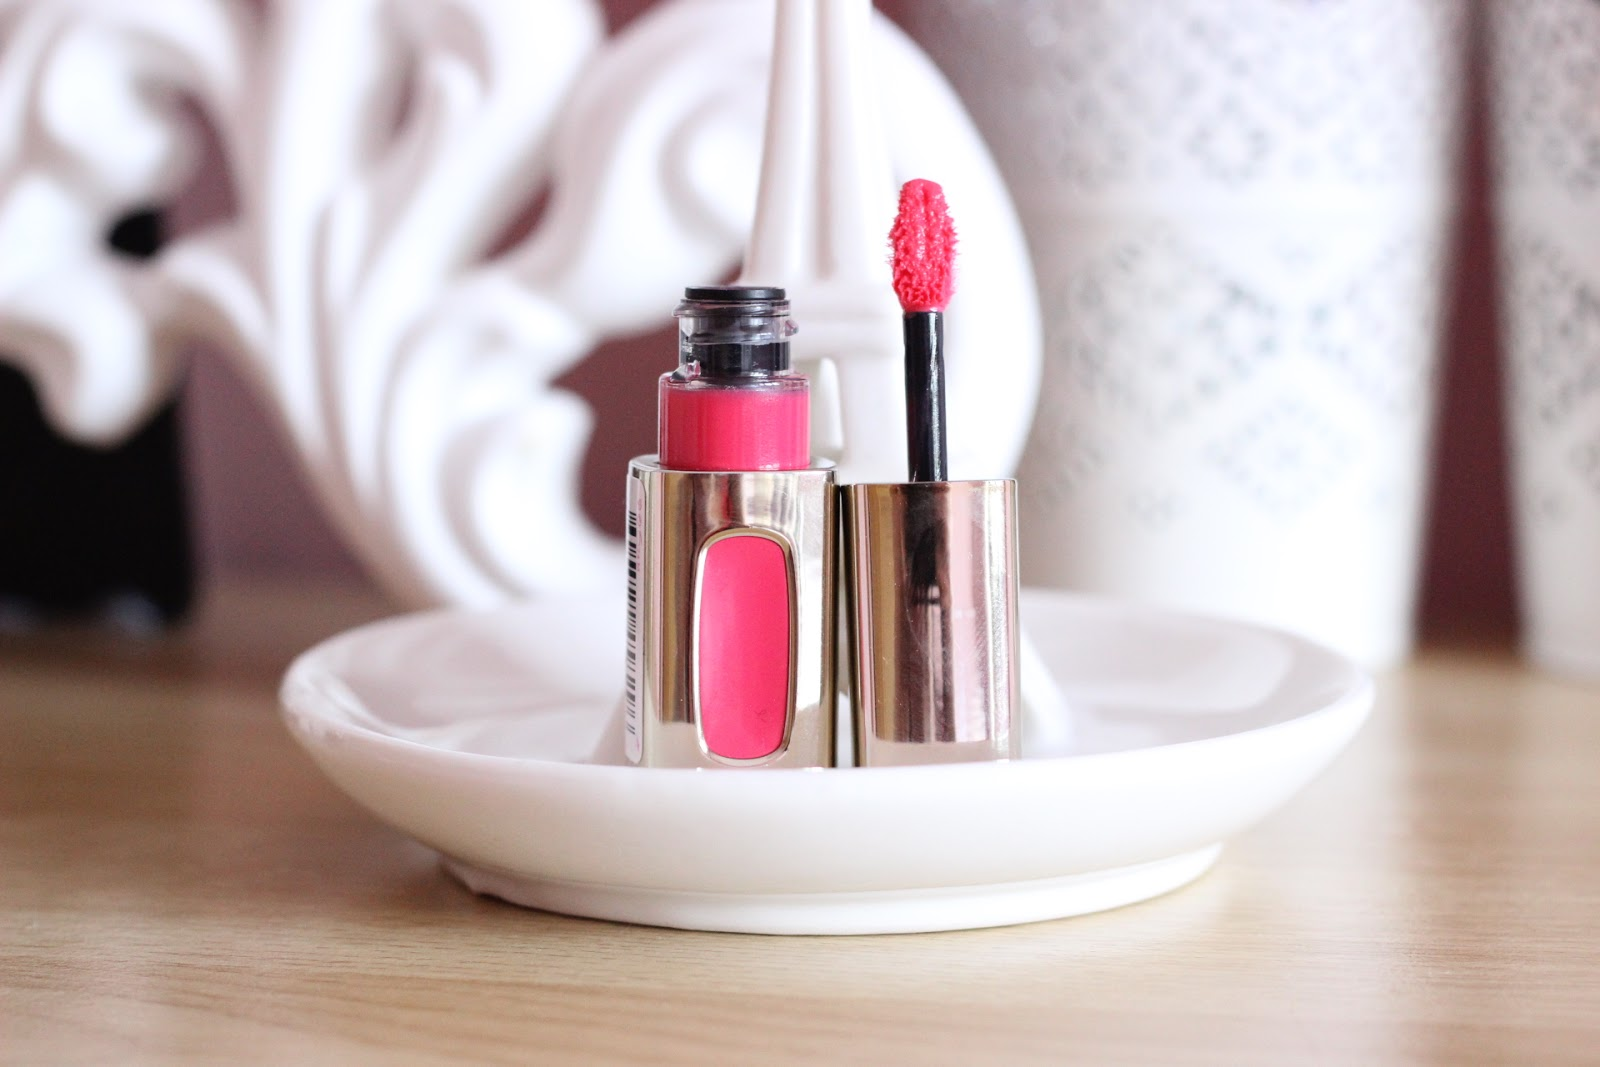 YSL Gloss Stain Dupe